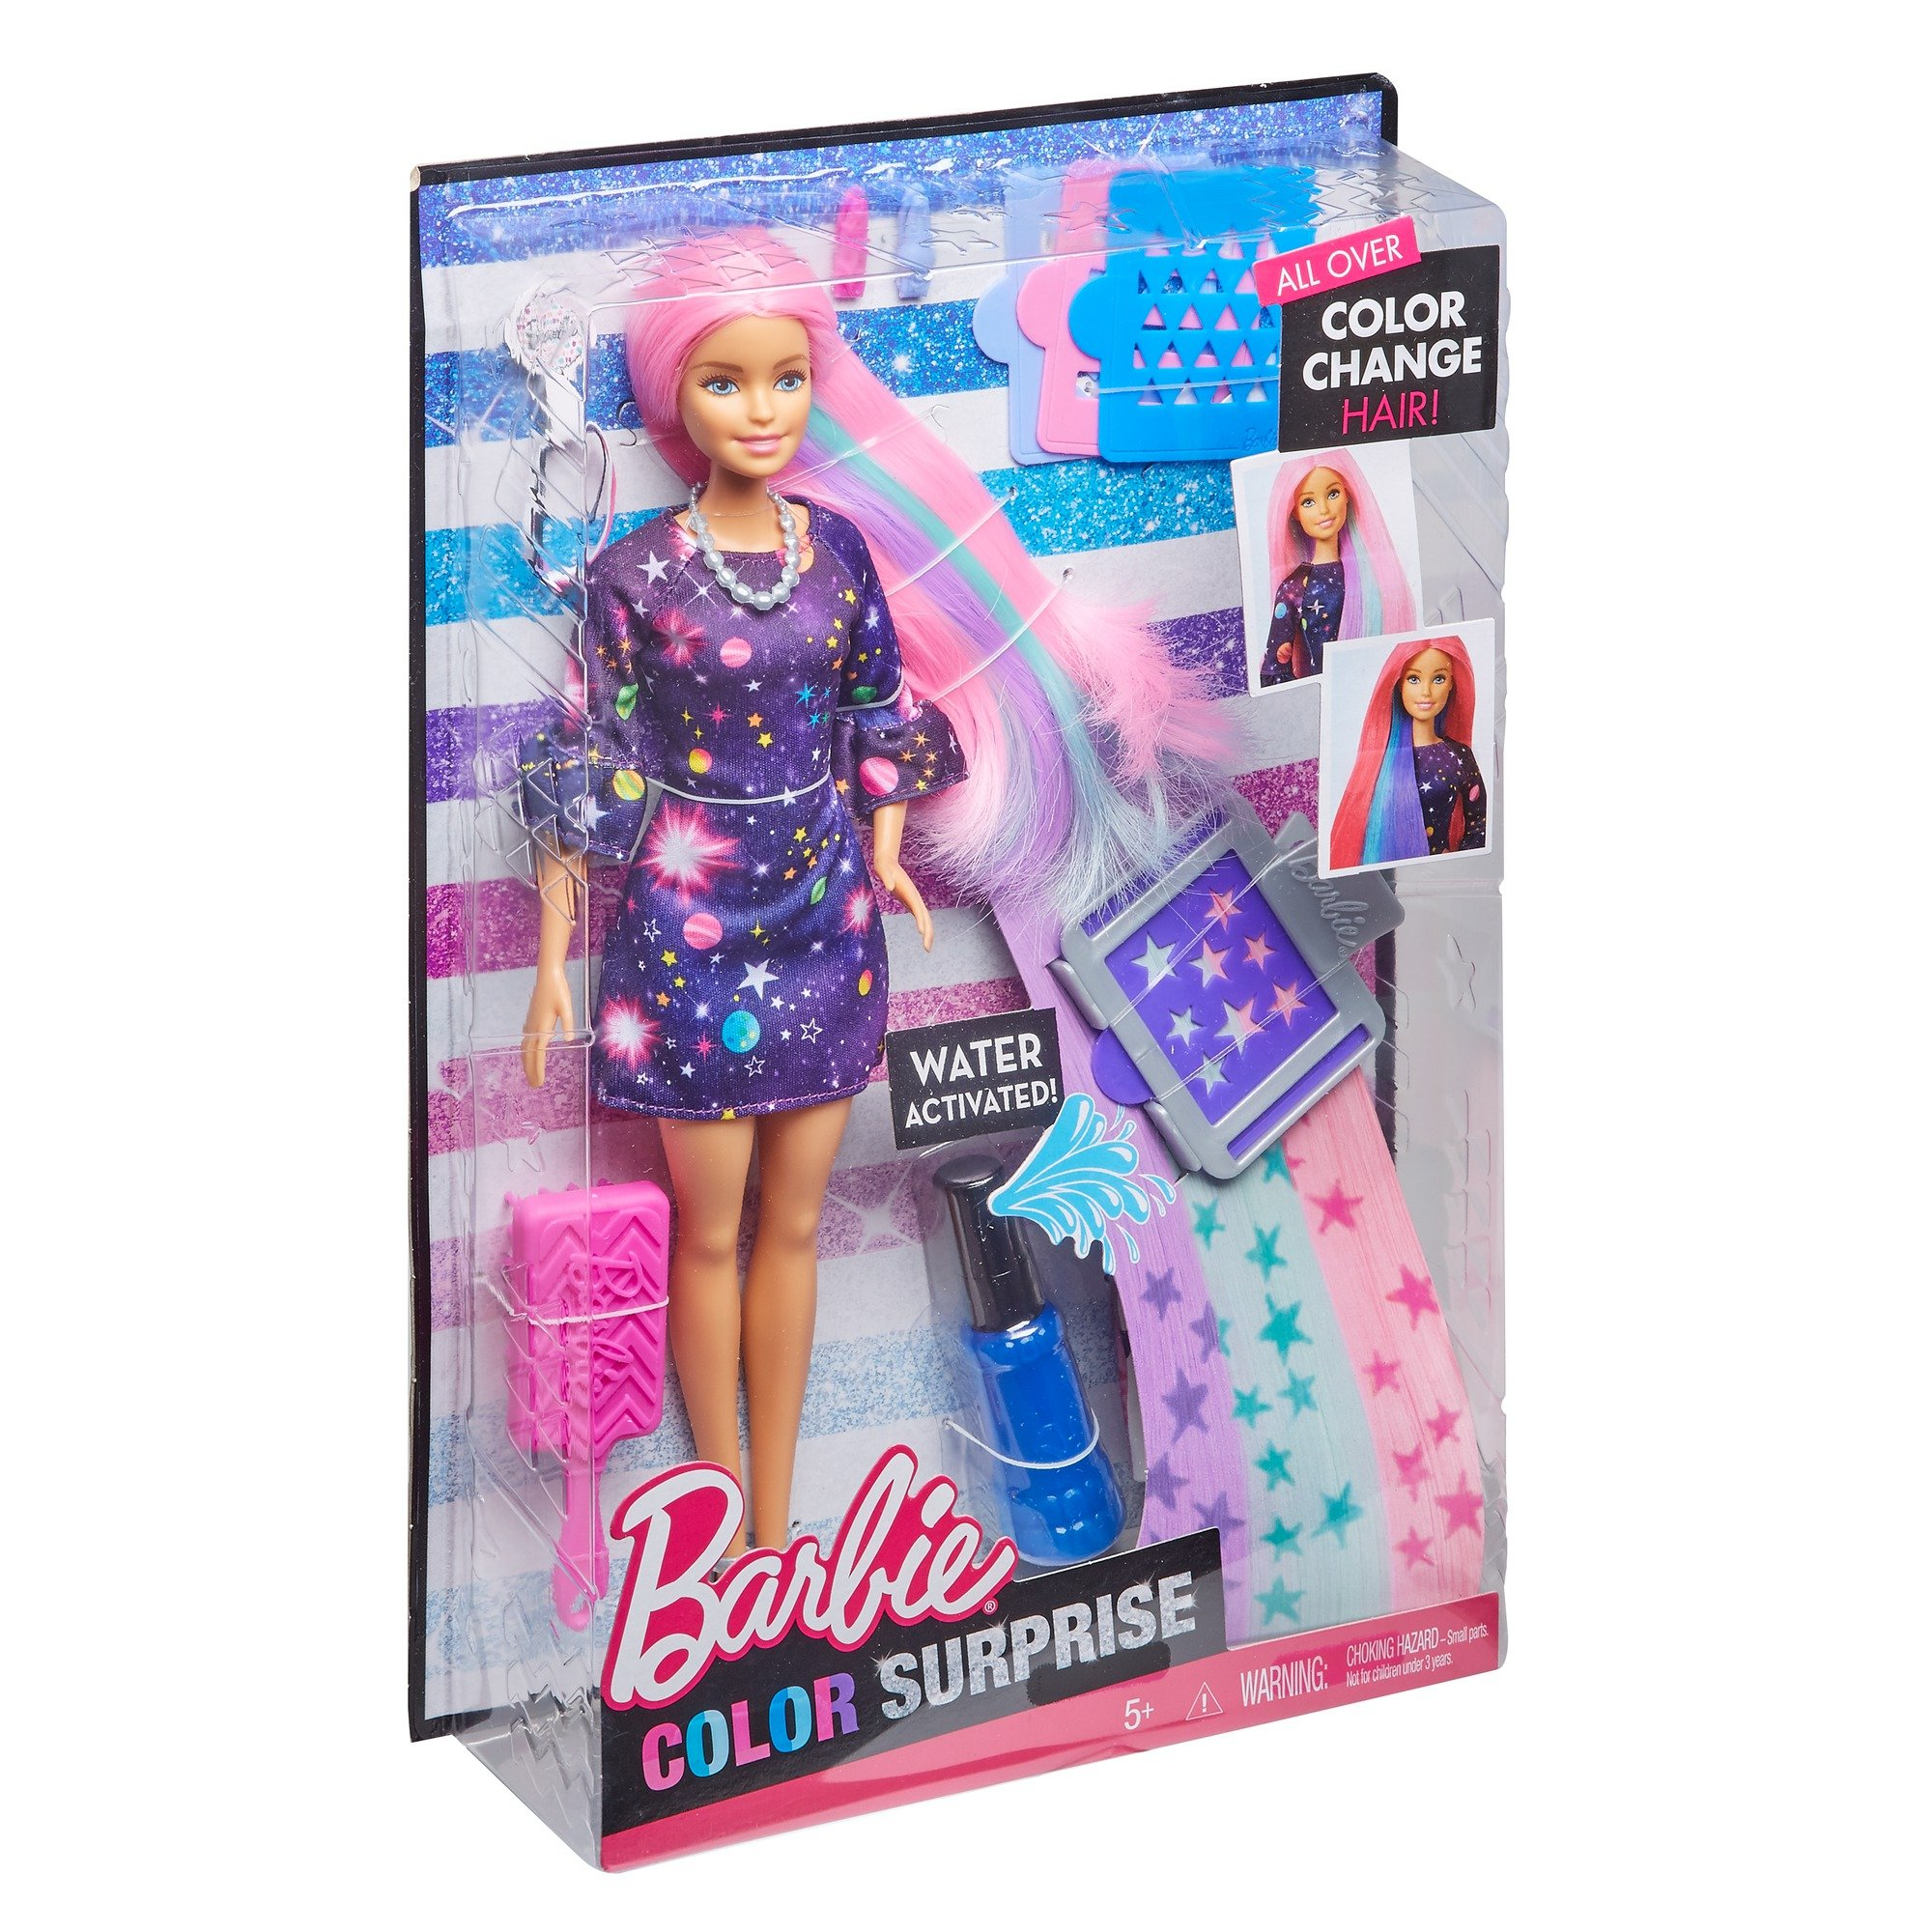 Barbie Color Surprise Doll Pink Fhx00 Playsets Toys Games